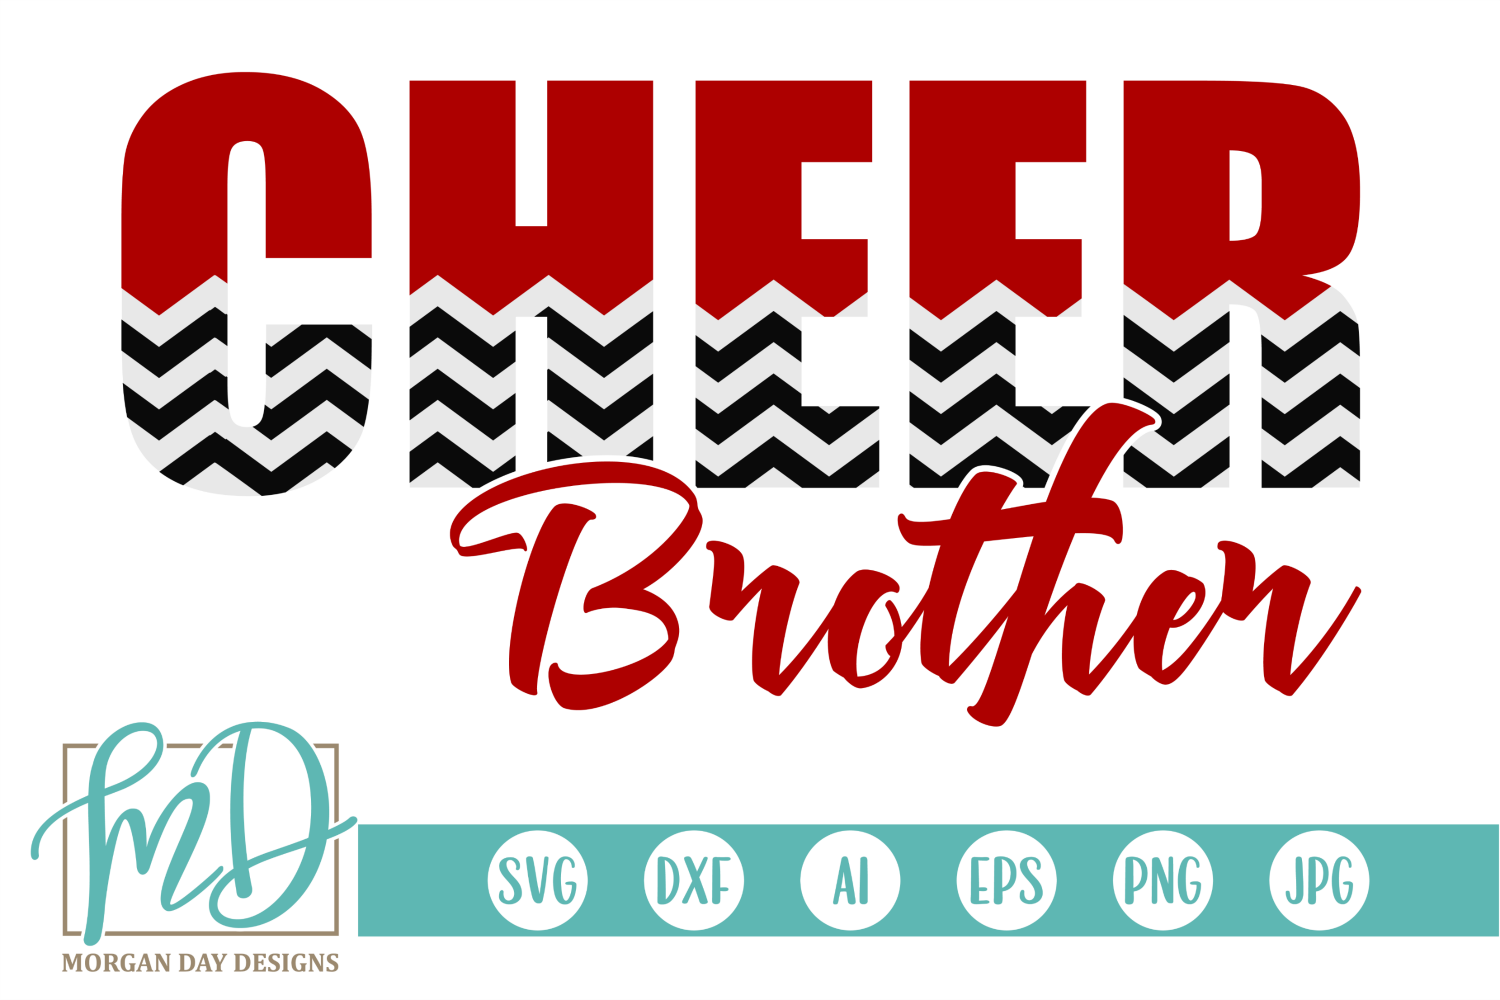 Download Free Cheer Brother Graphic By Morgan Day Designs Creative Fabrica for Cricut Explore, Silhouette and other cutting machines.